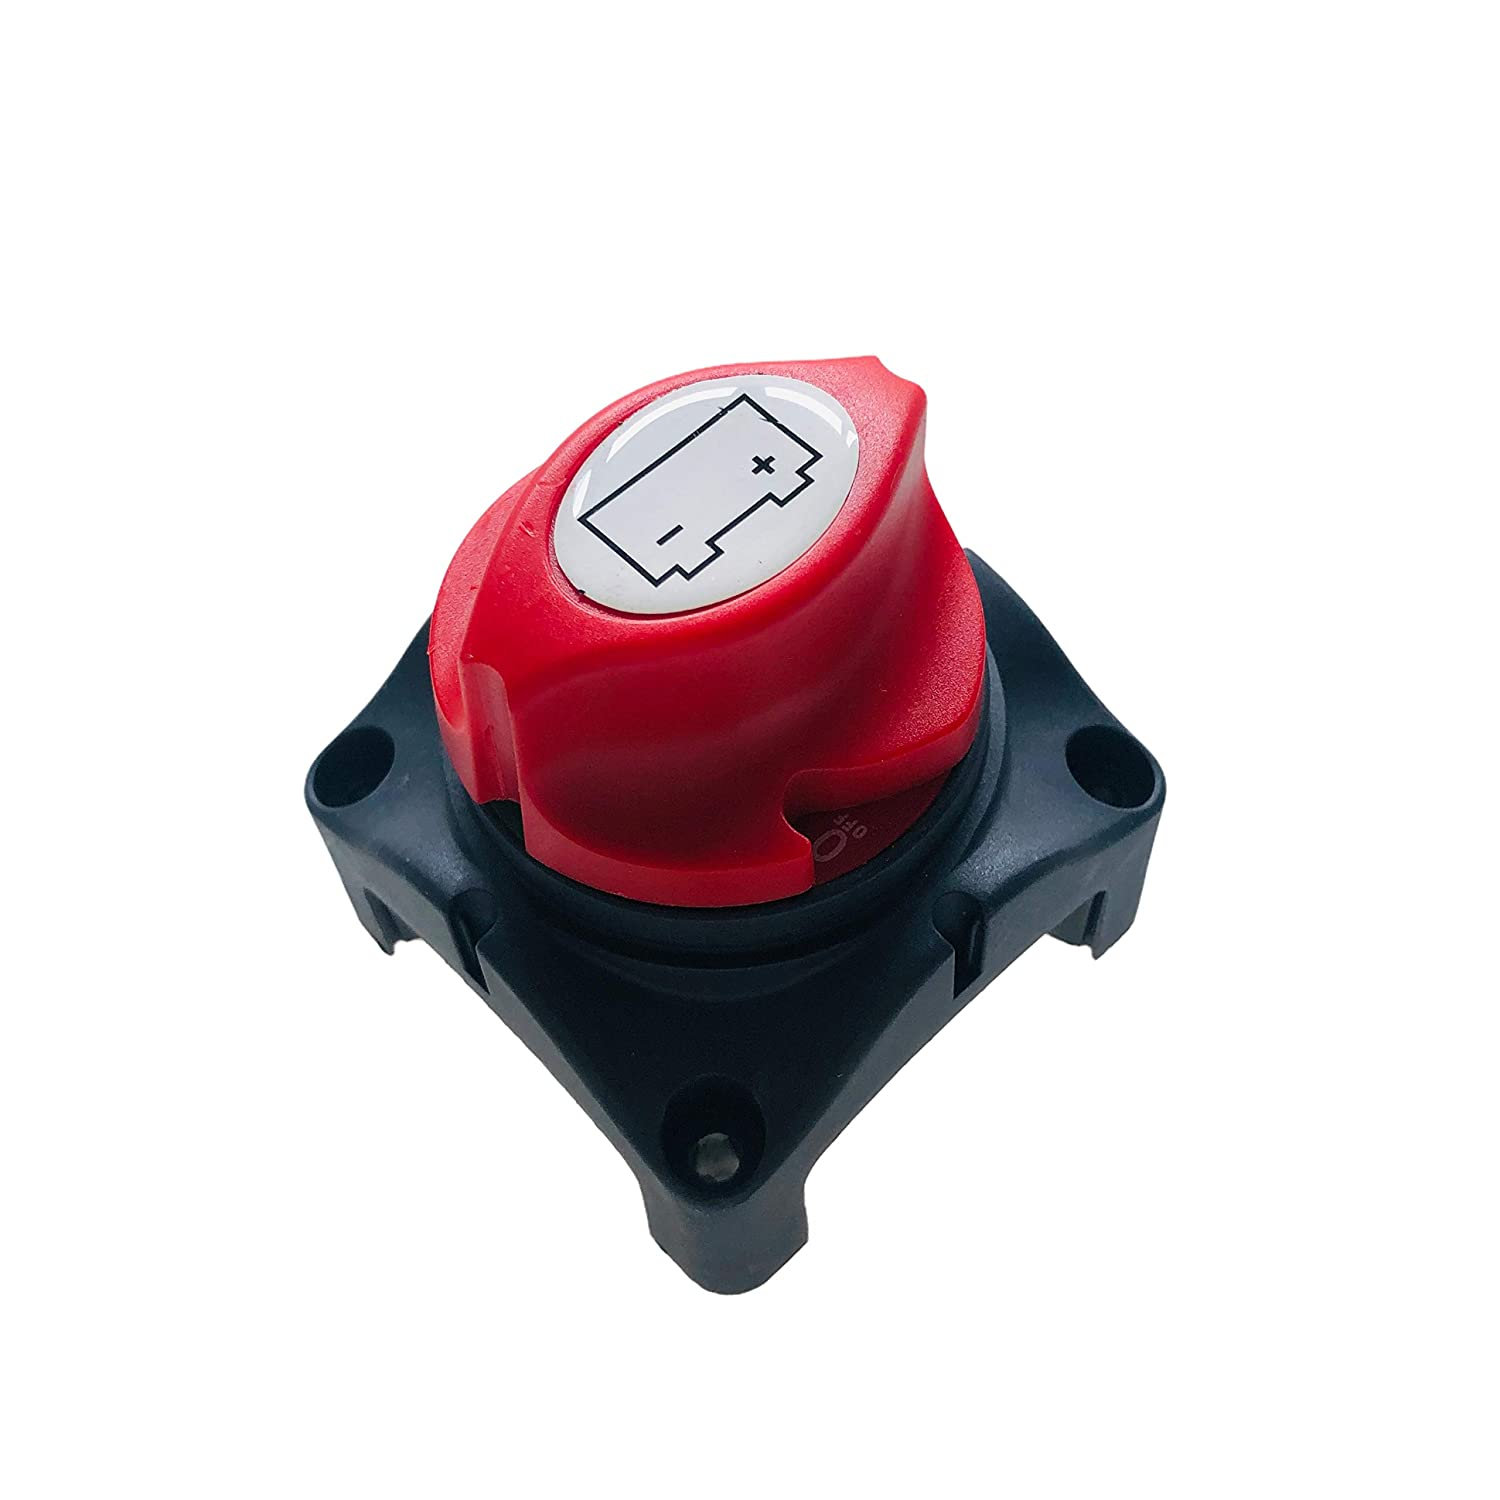 12V Waterproof Switch Disconnect Isolator for Car RV Boat Truck ATV Vehicles On//Off ZOK Battery Disconnect Switch 48V Compatible Battery Power Cut Master